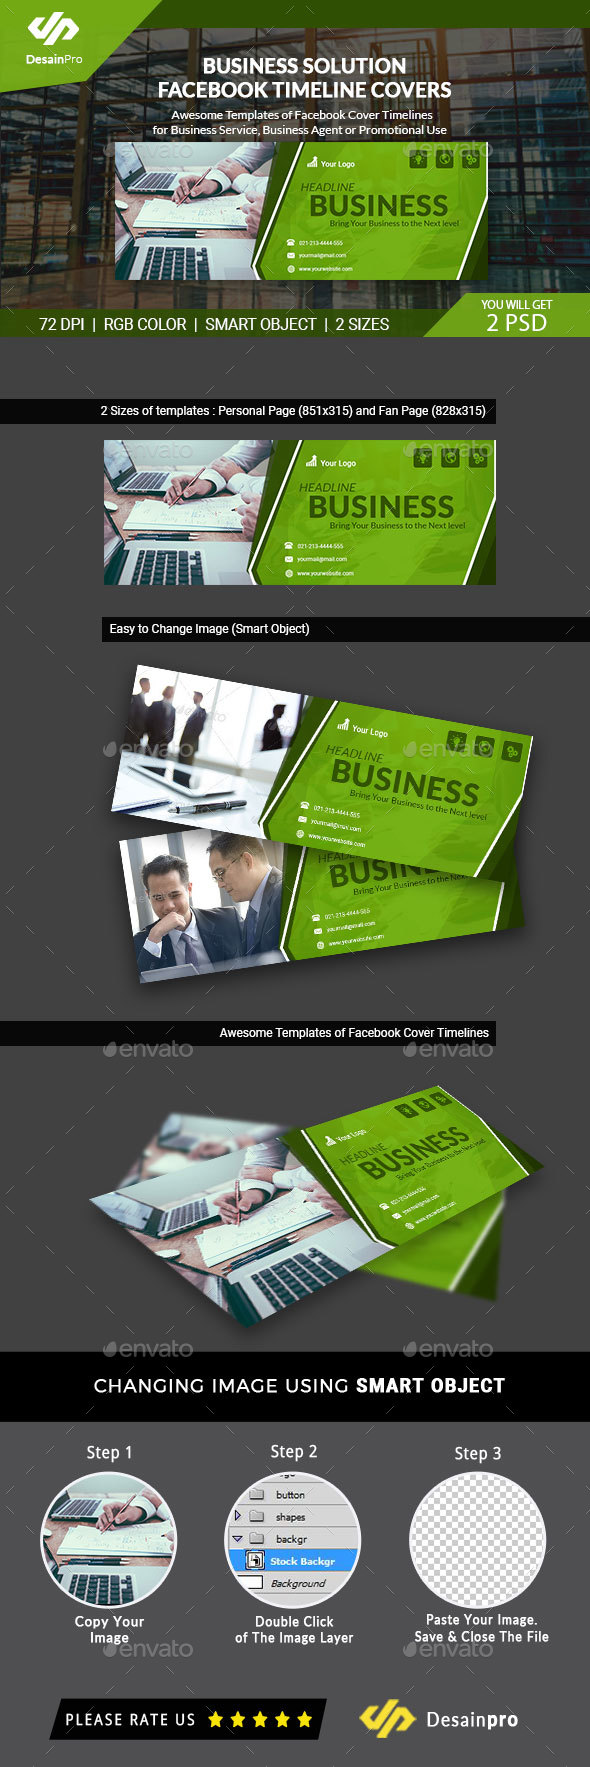 Business Services Facebook Timeline Cover - AR - Facebook Timeline Covers Social Media